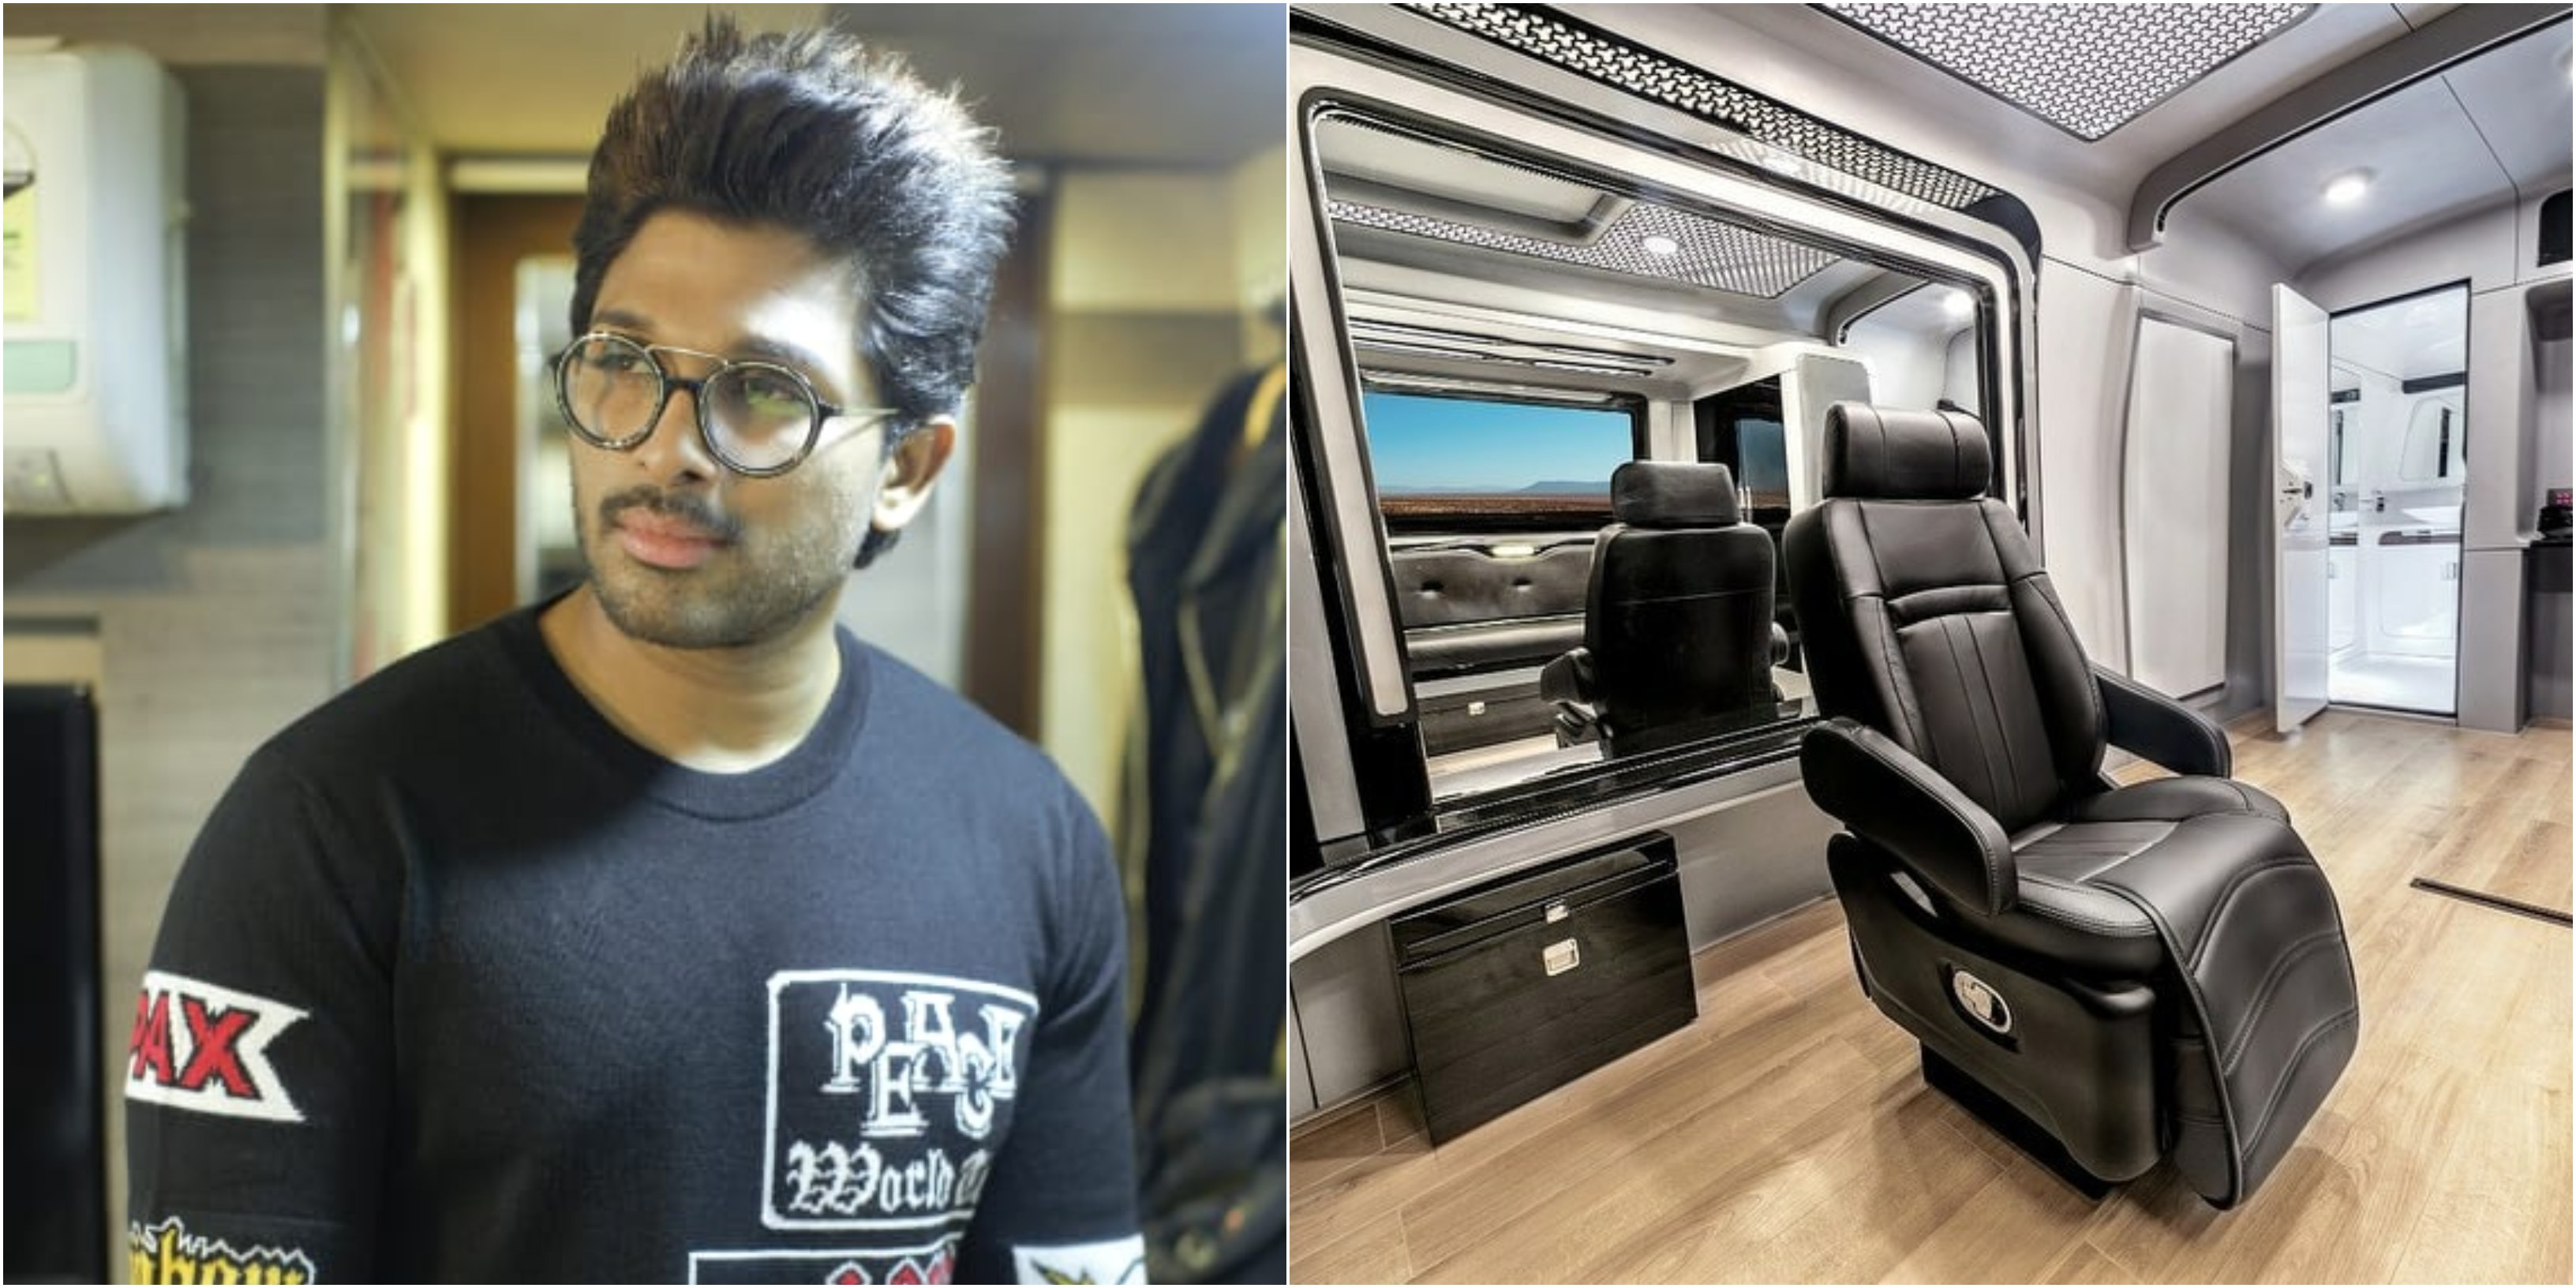 Allu Arjun shares photos of newly upgraded vanity van